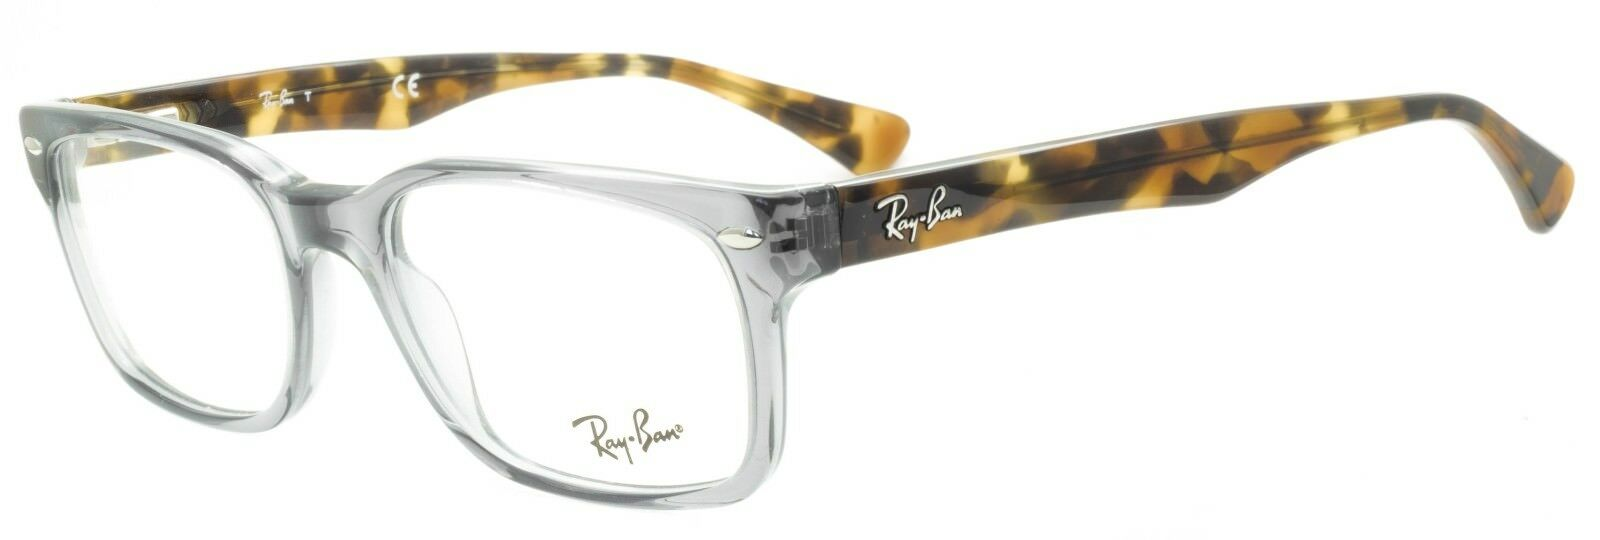 bafd0d942c RAY BAN RB 5286 5629 51mm RX Optical FRAMES RAYBAN Glasses Eyewear - New  TRUSTED 1 of 12Only 2 available ...